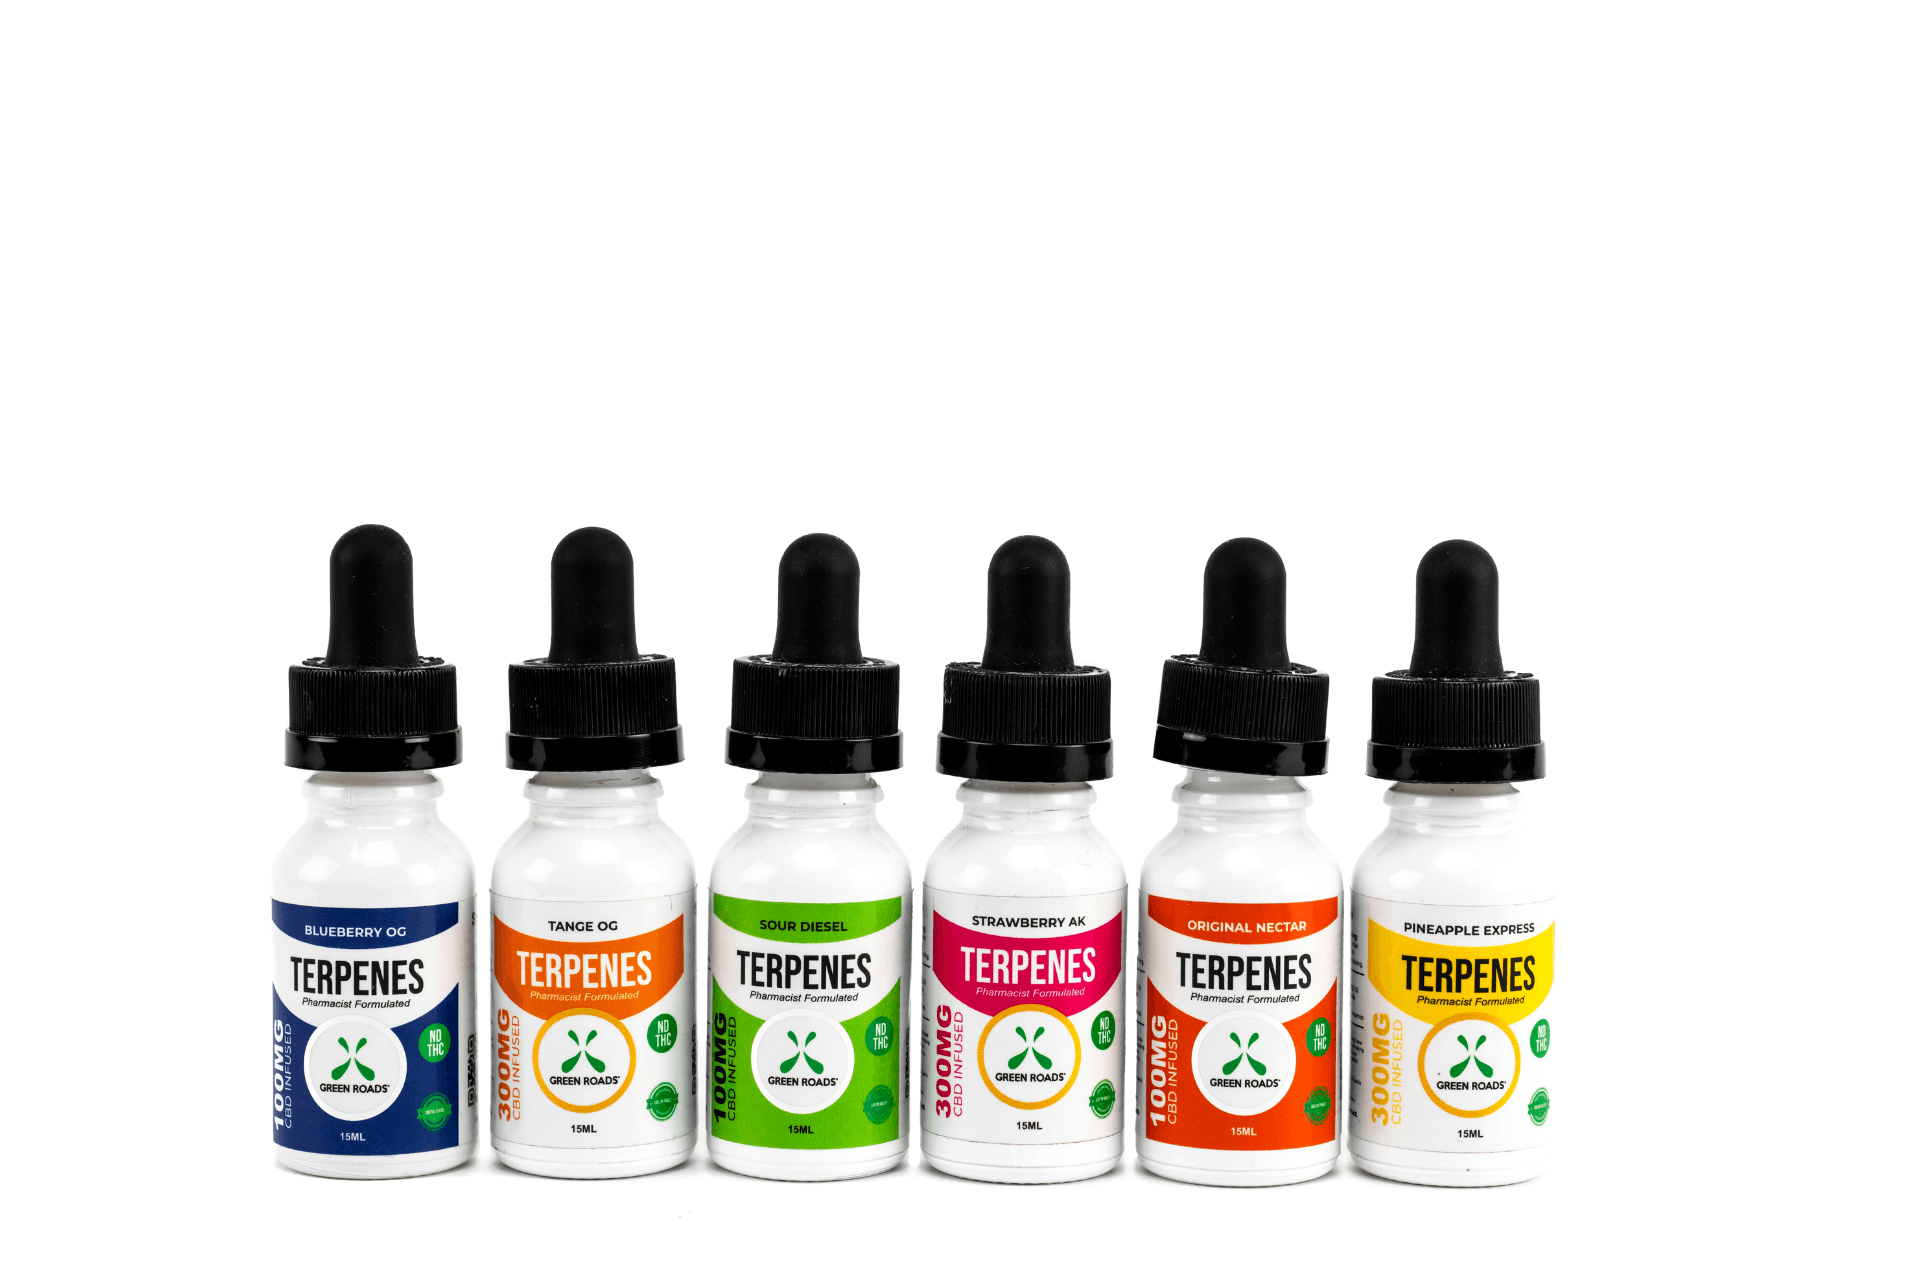 Green Roads CBD Terpenes Oil, 100mg